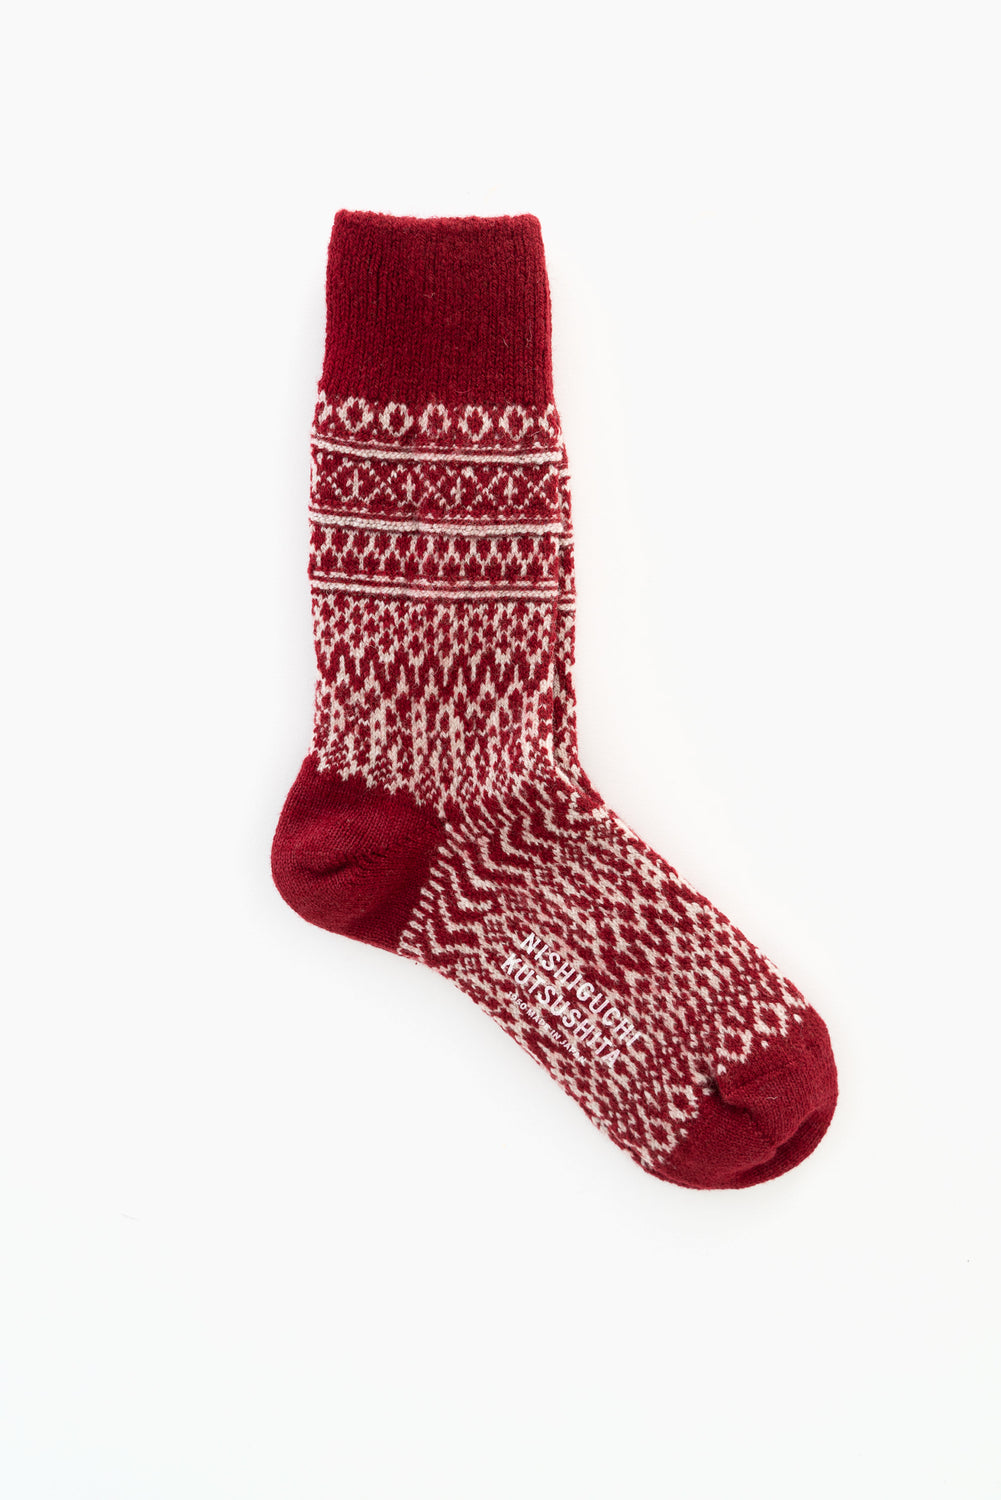 Wool Jacquard Socks, Wine